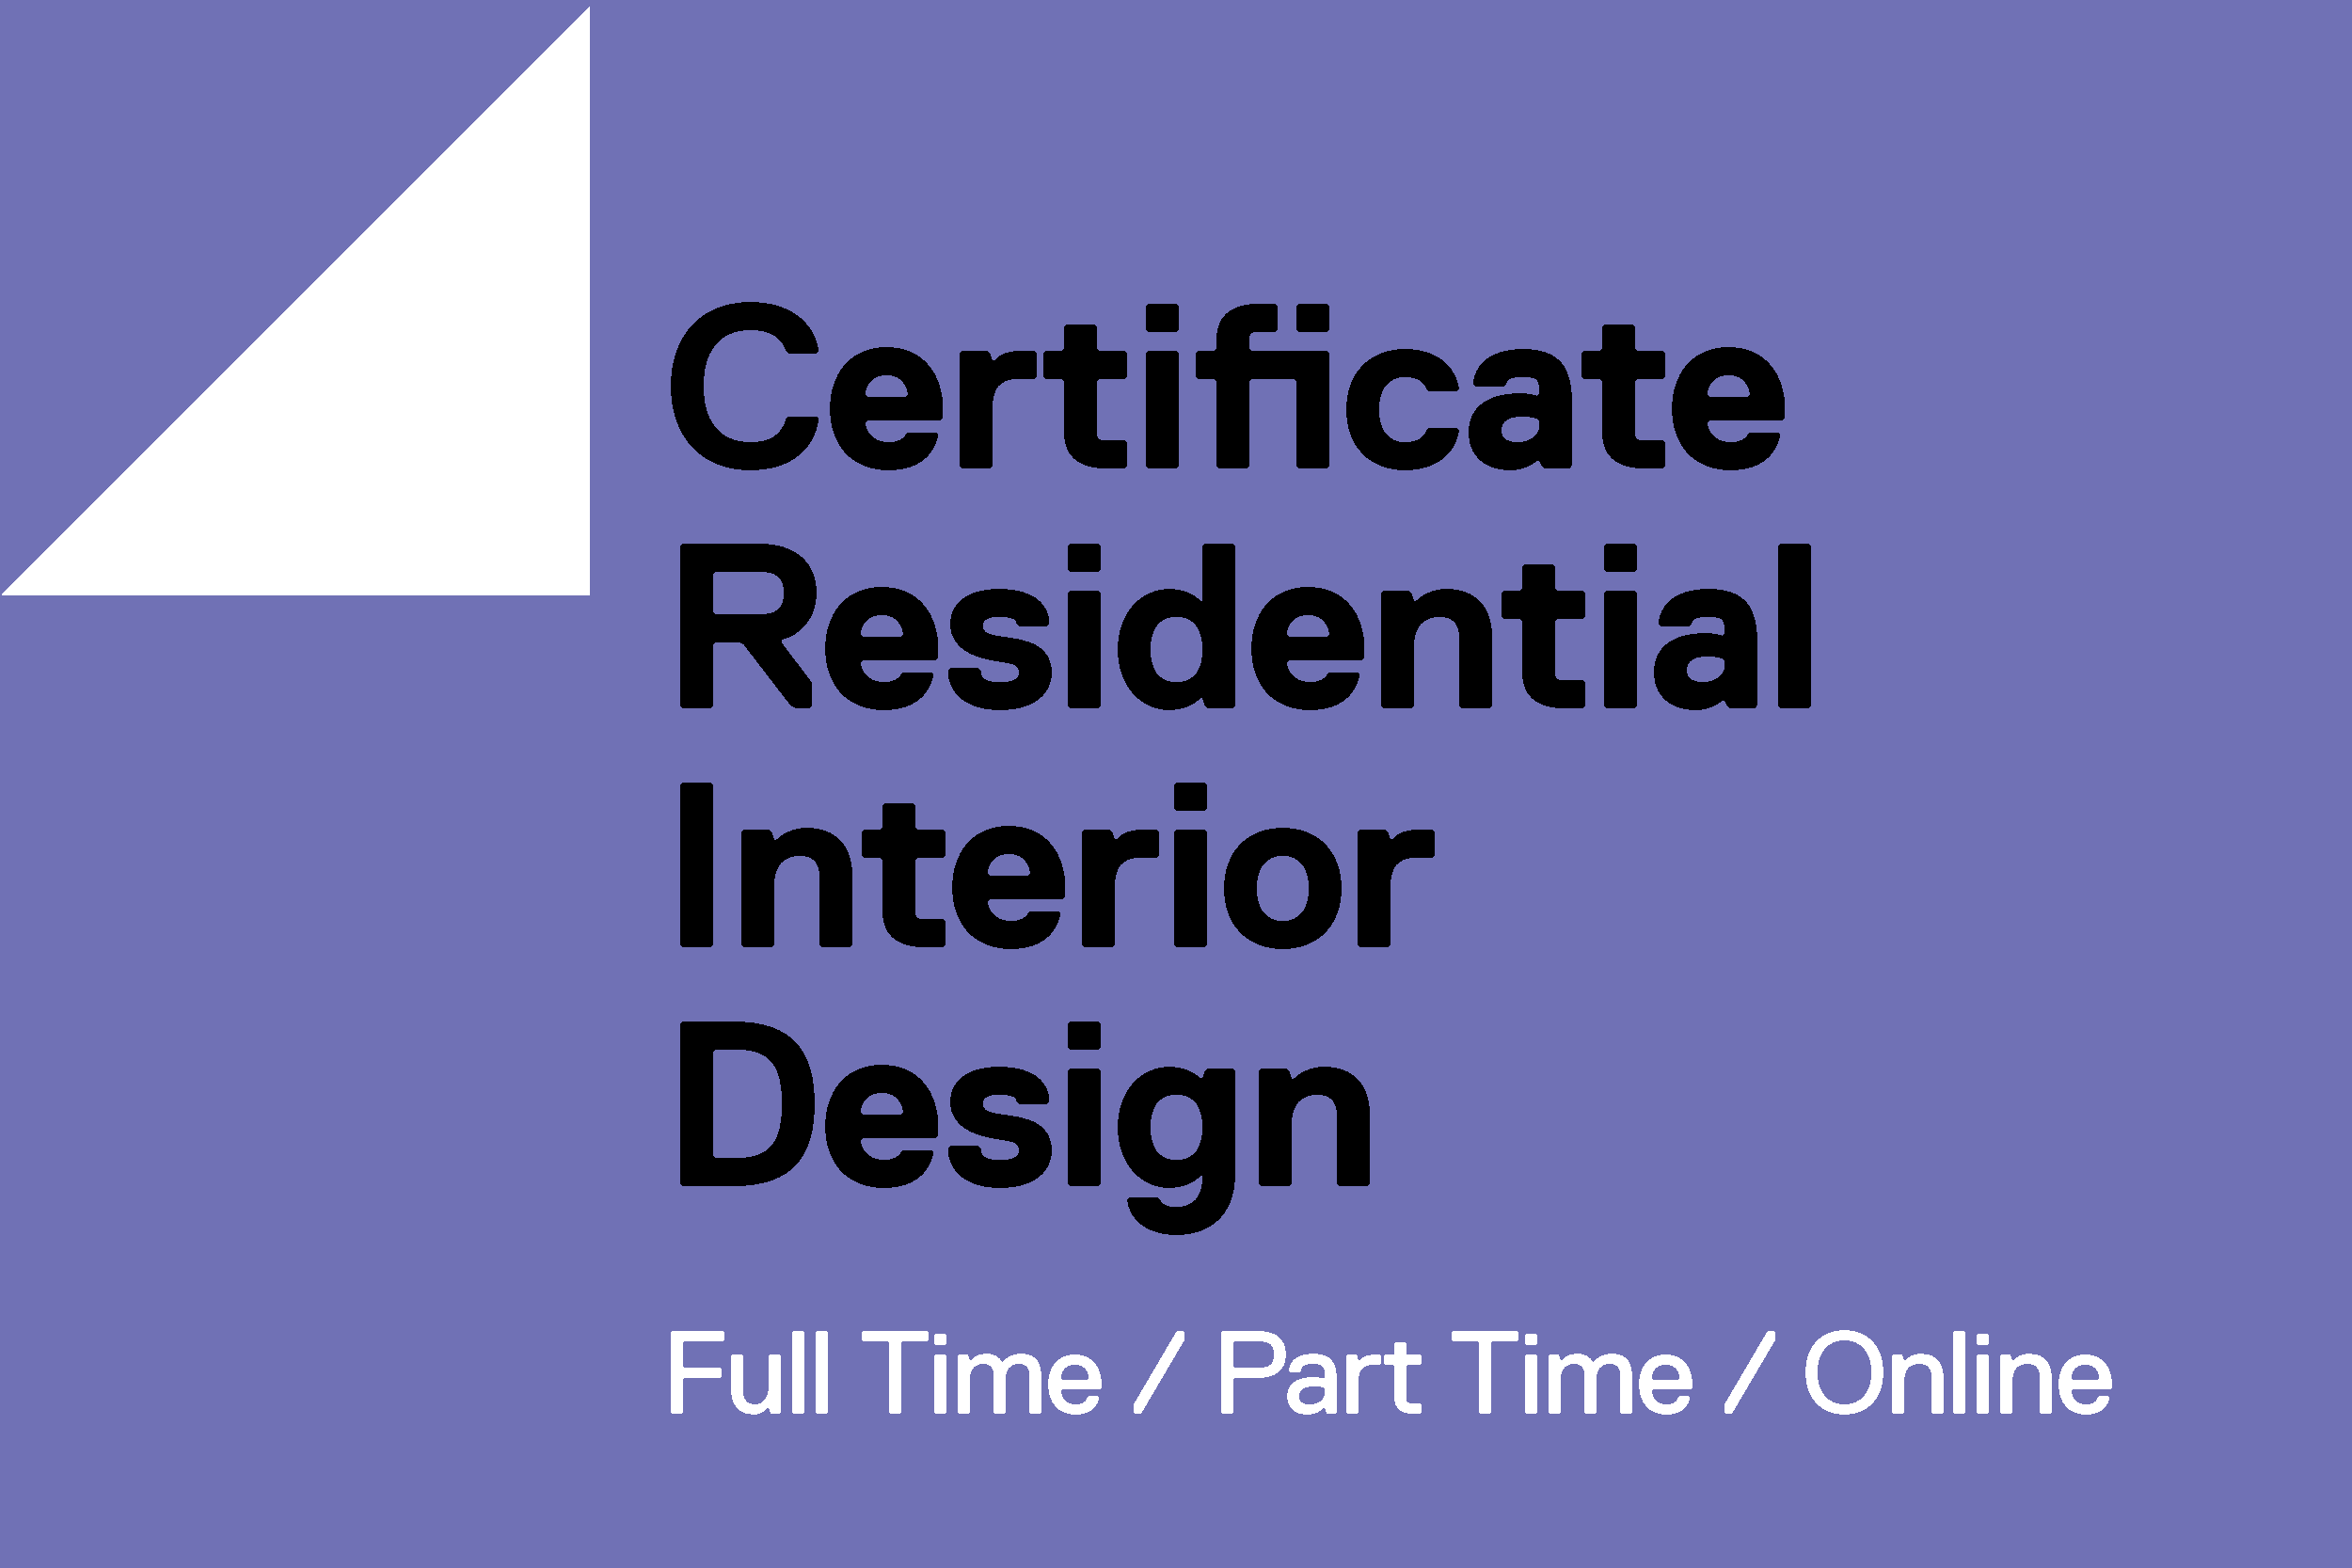 Thumbnail Graphic Certificate Residential Interior Design